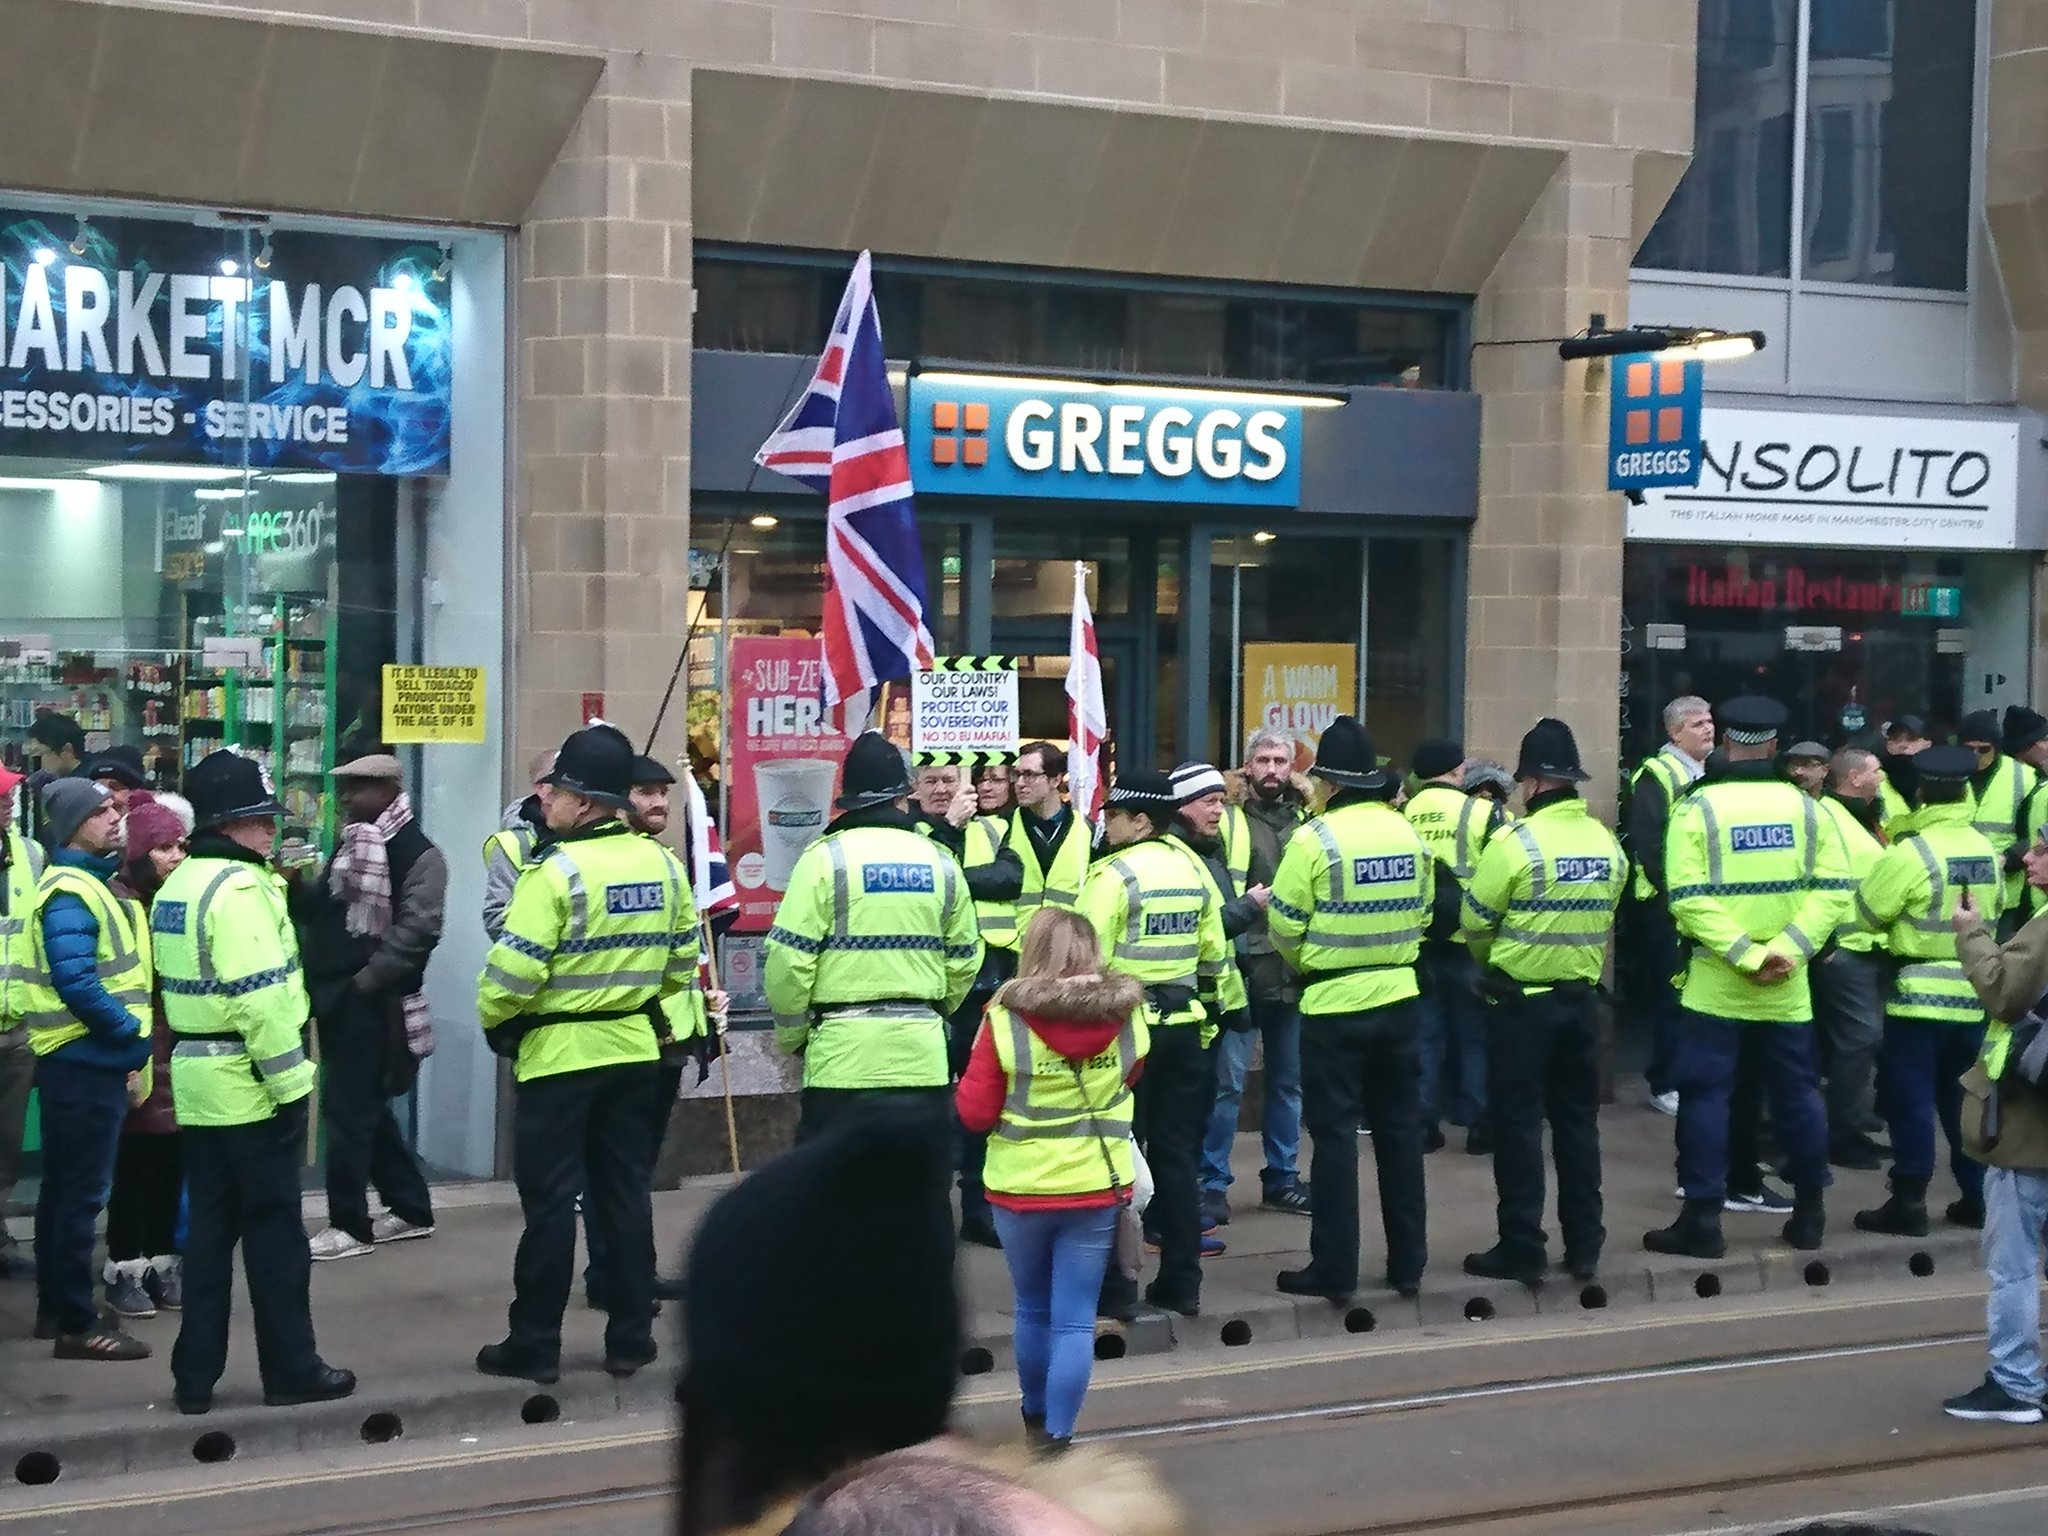 People thought the protest was over Greggs' new vegan sausage rolls. Credit: Twitter/@therealbriman